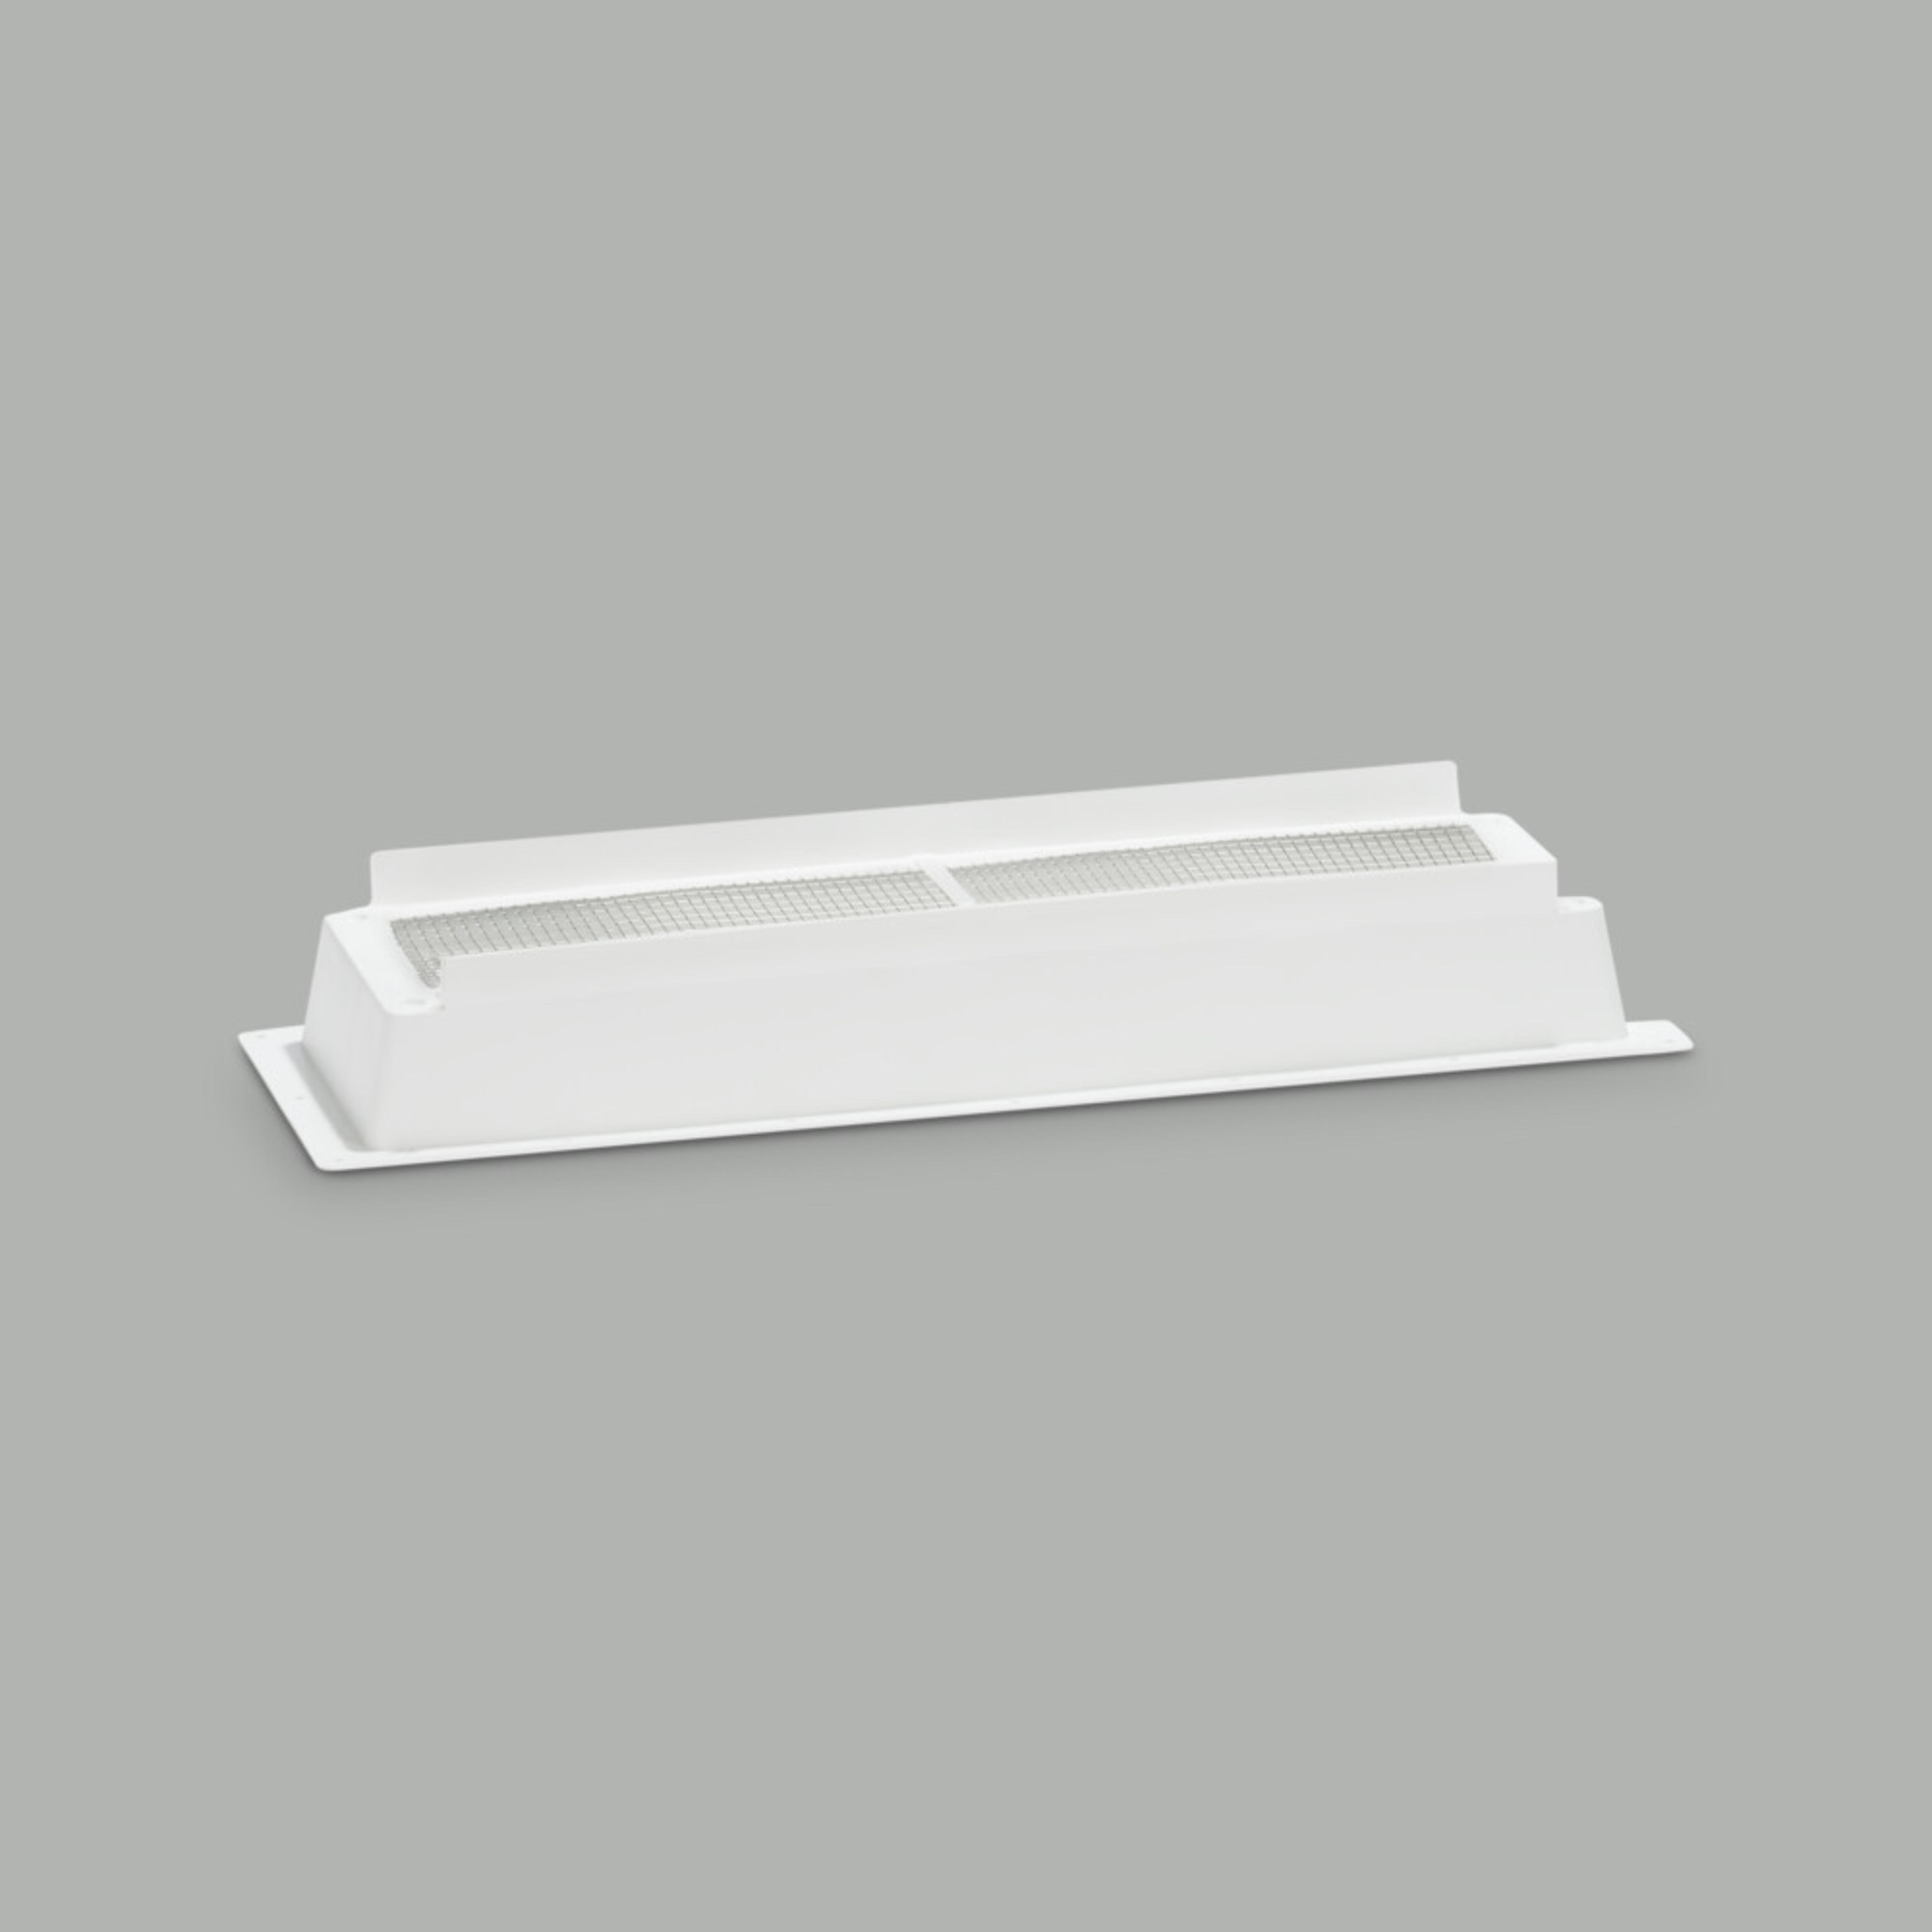 Dometic Refrigerator Roof Vent